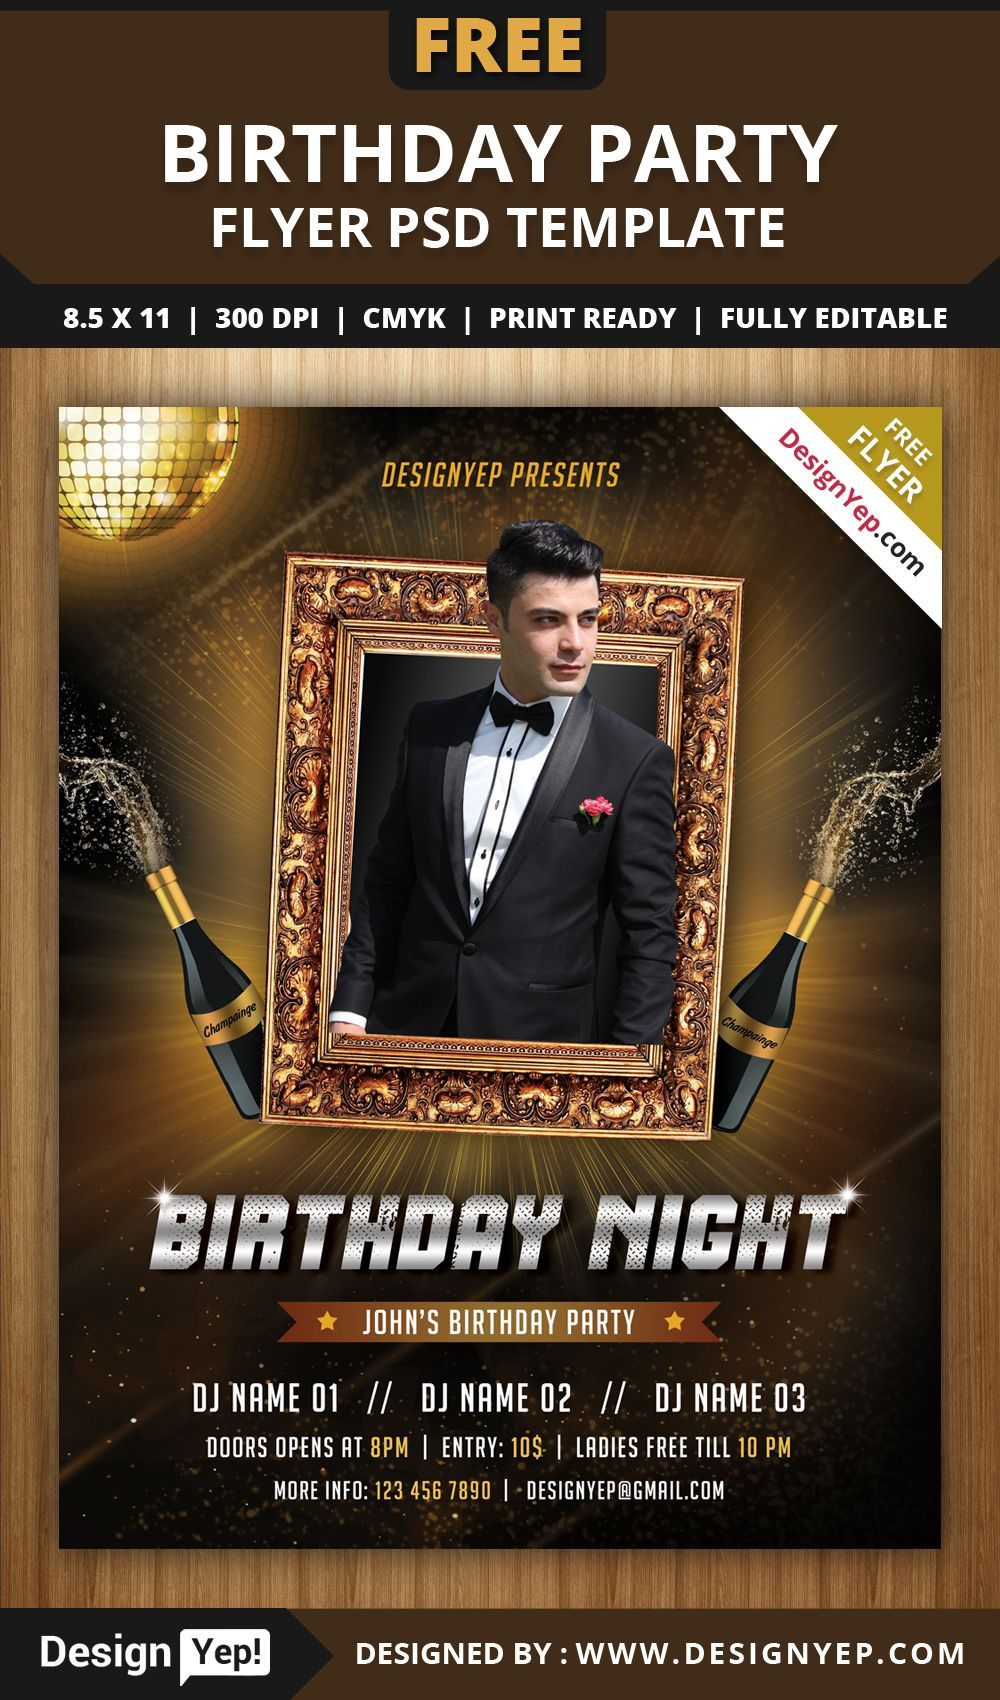 002 Fearsome Free Birthday Flyer Template Psd Inspiration  Foam Party - Neon Glow Download PoolFull